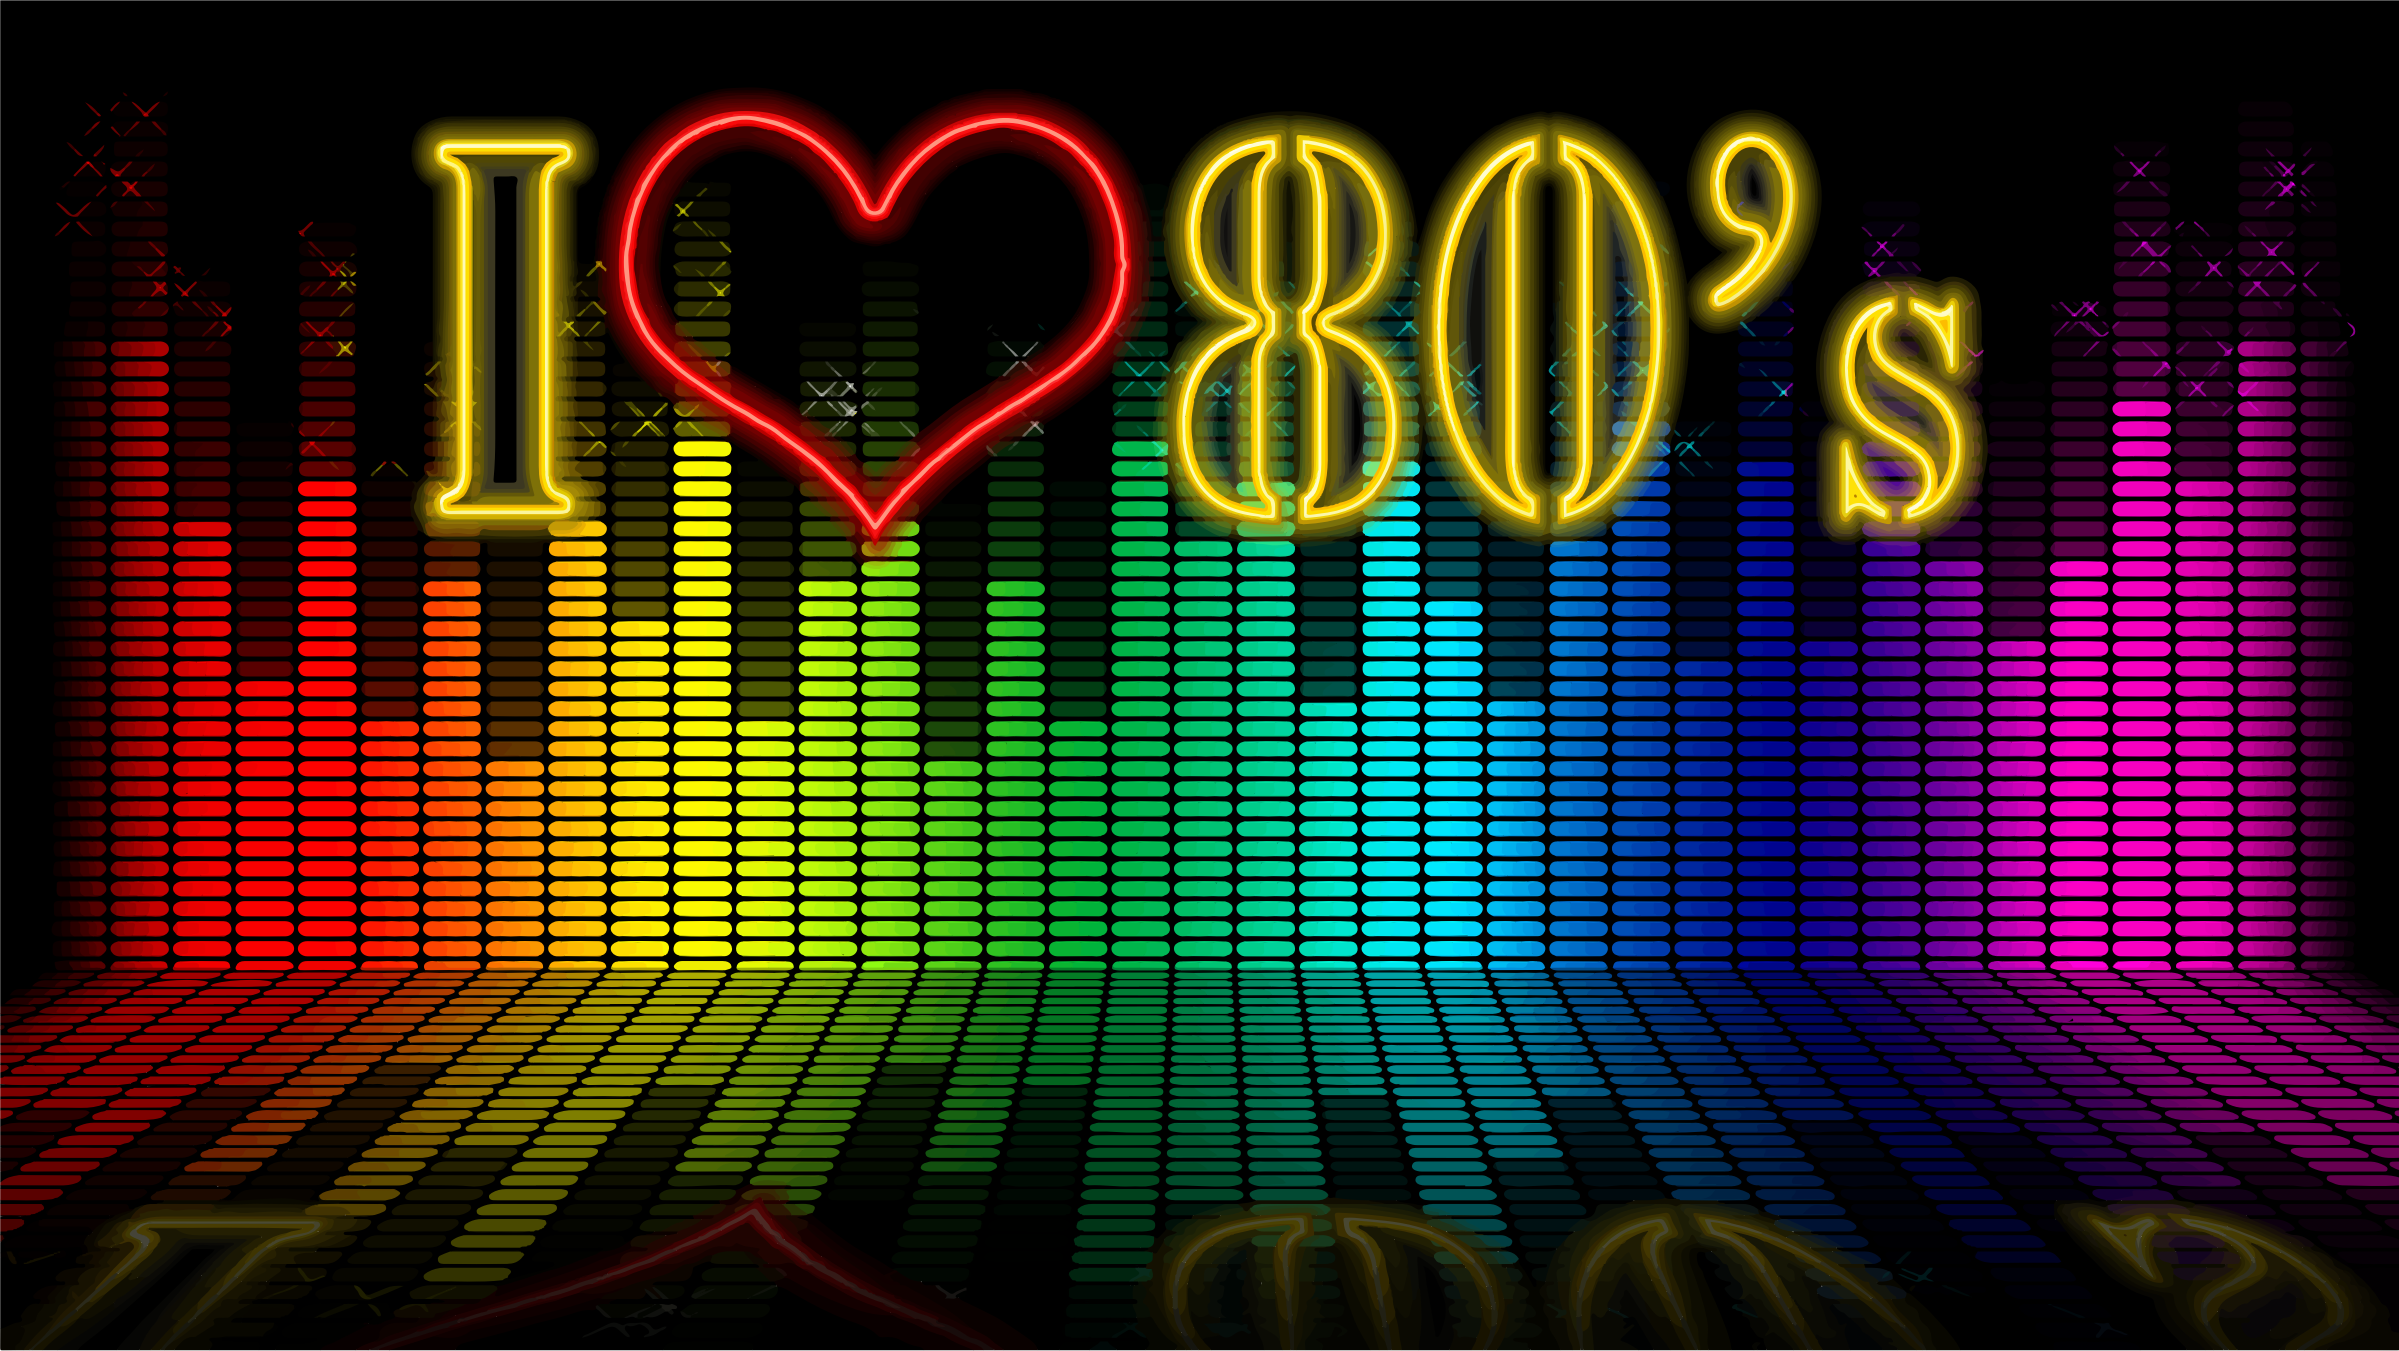 S icons png free. 80's clipart i love the 80